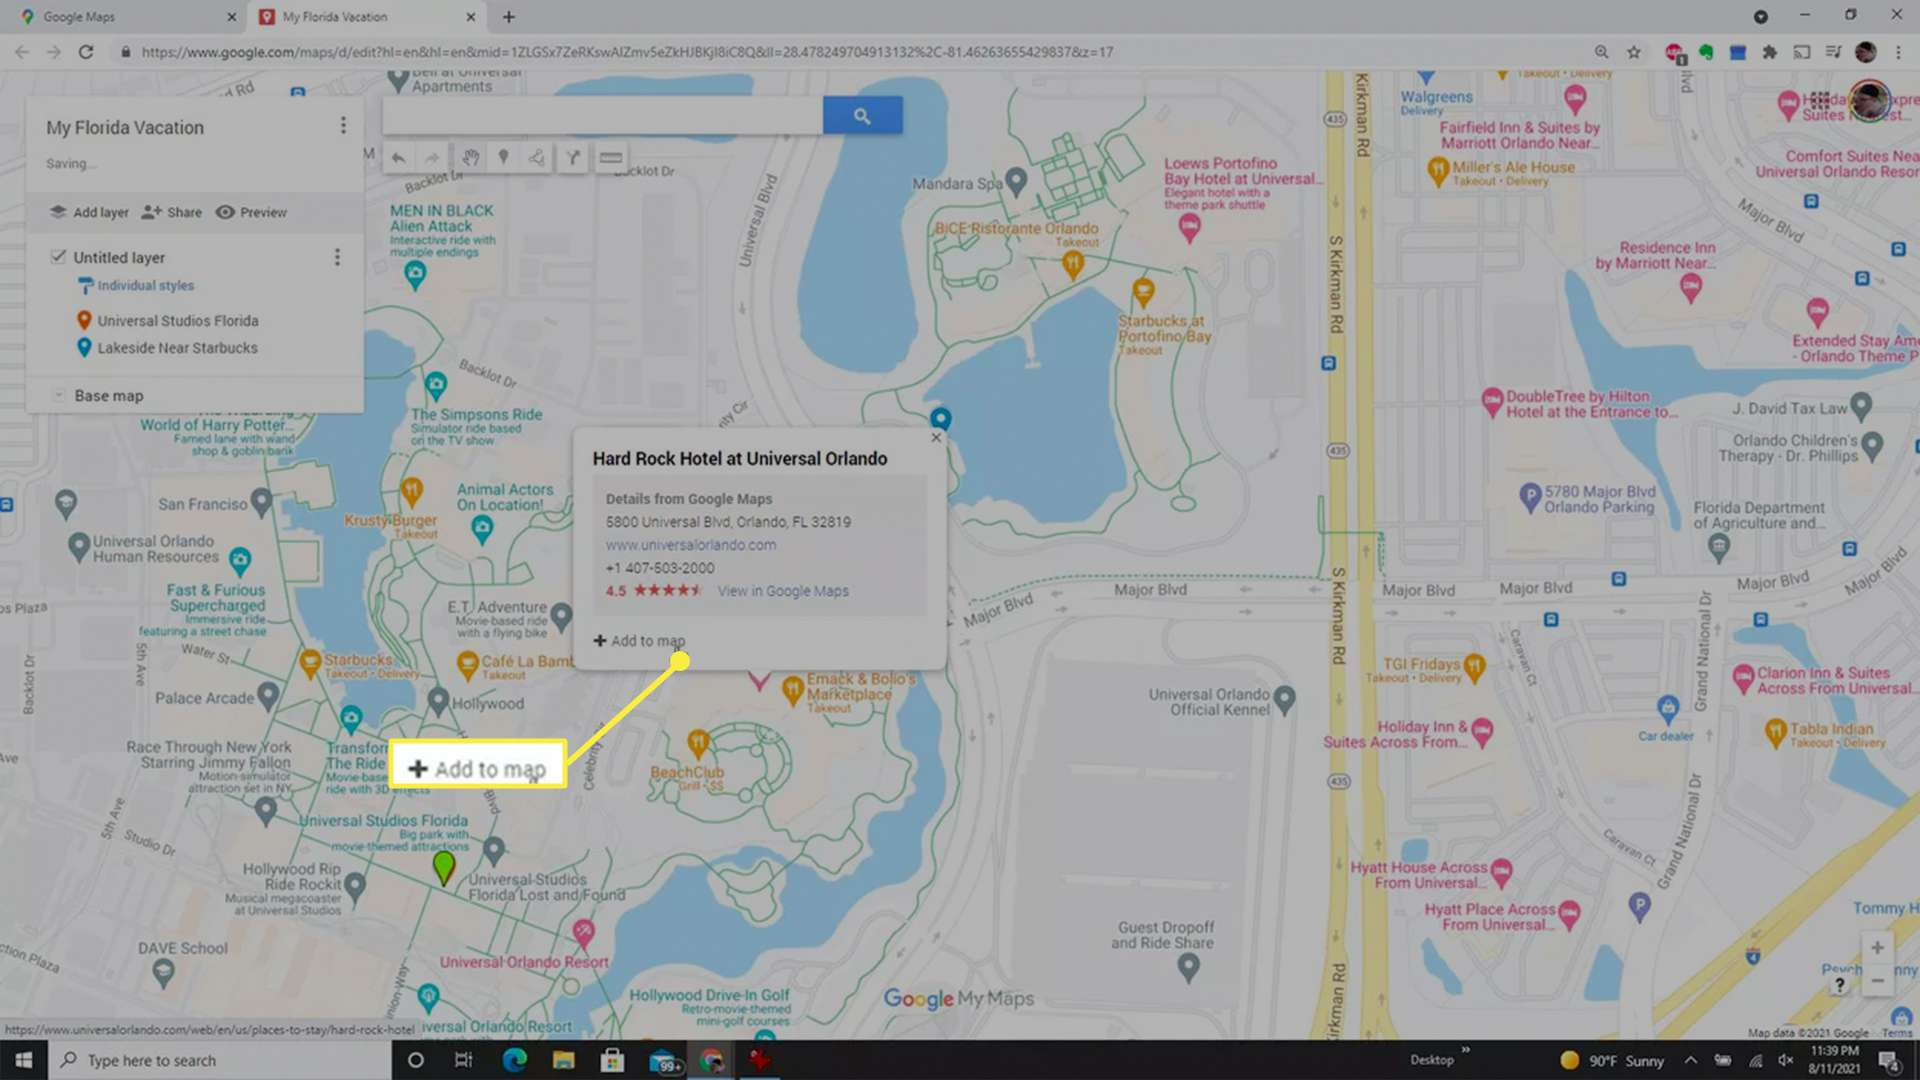 Adding an existing location as a pin to a custom Google Maps map.